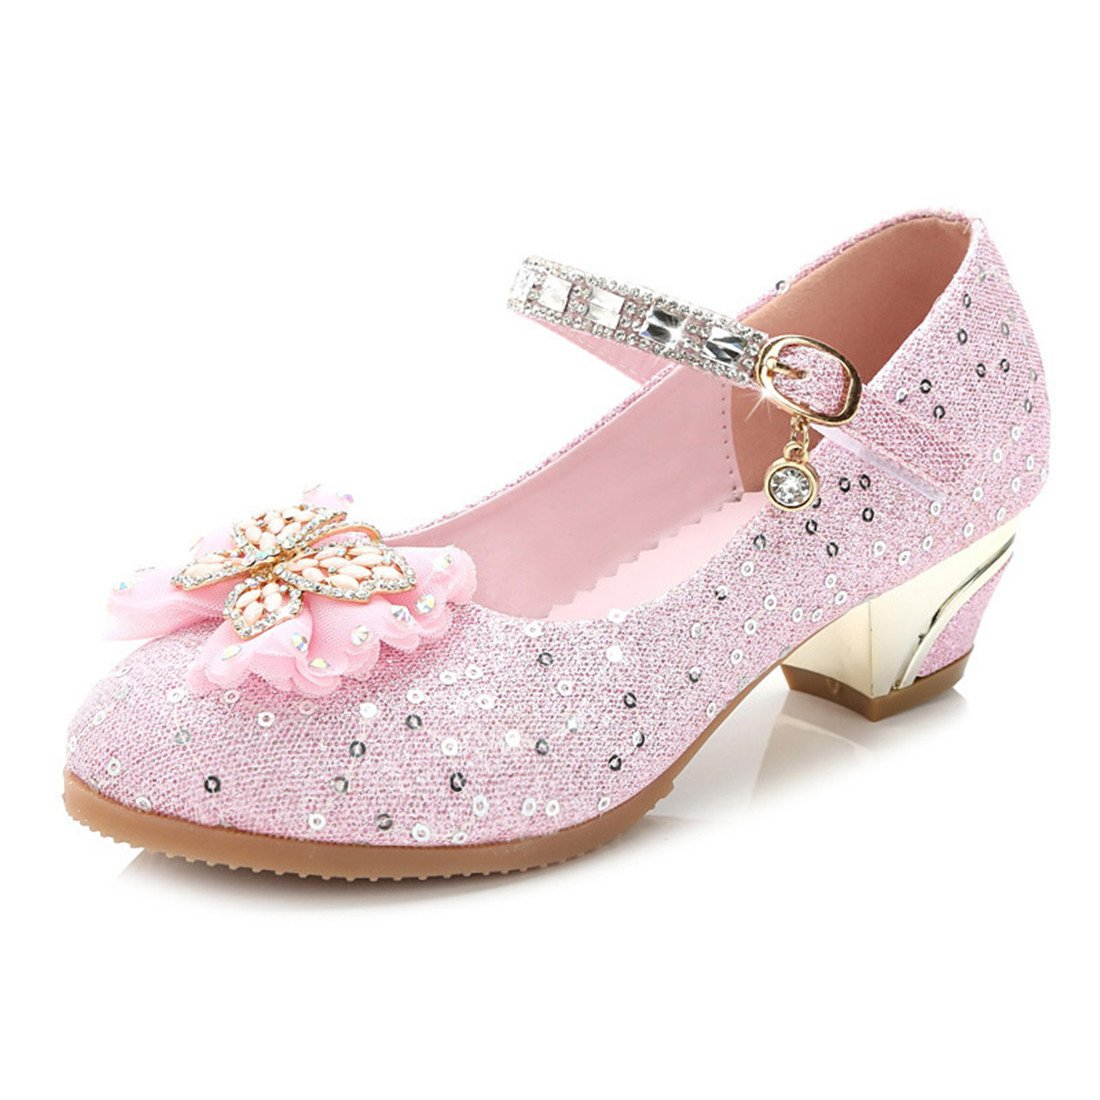 Toddler Littlle Big Kids Girls Glitter Wedding Shoes Dancing Party Mary Jane Flat Shoes Pink Size 2 by YANGXING (Image #1)